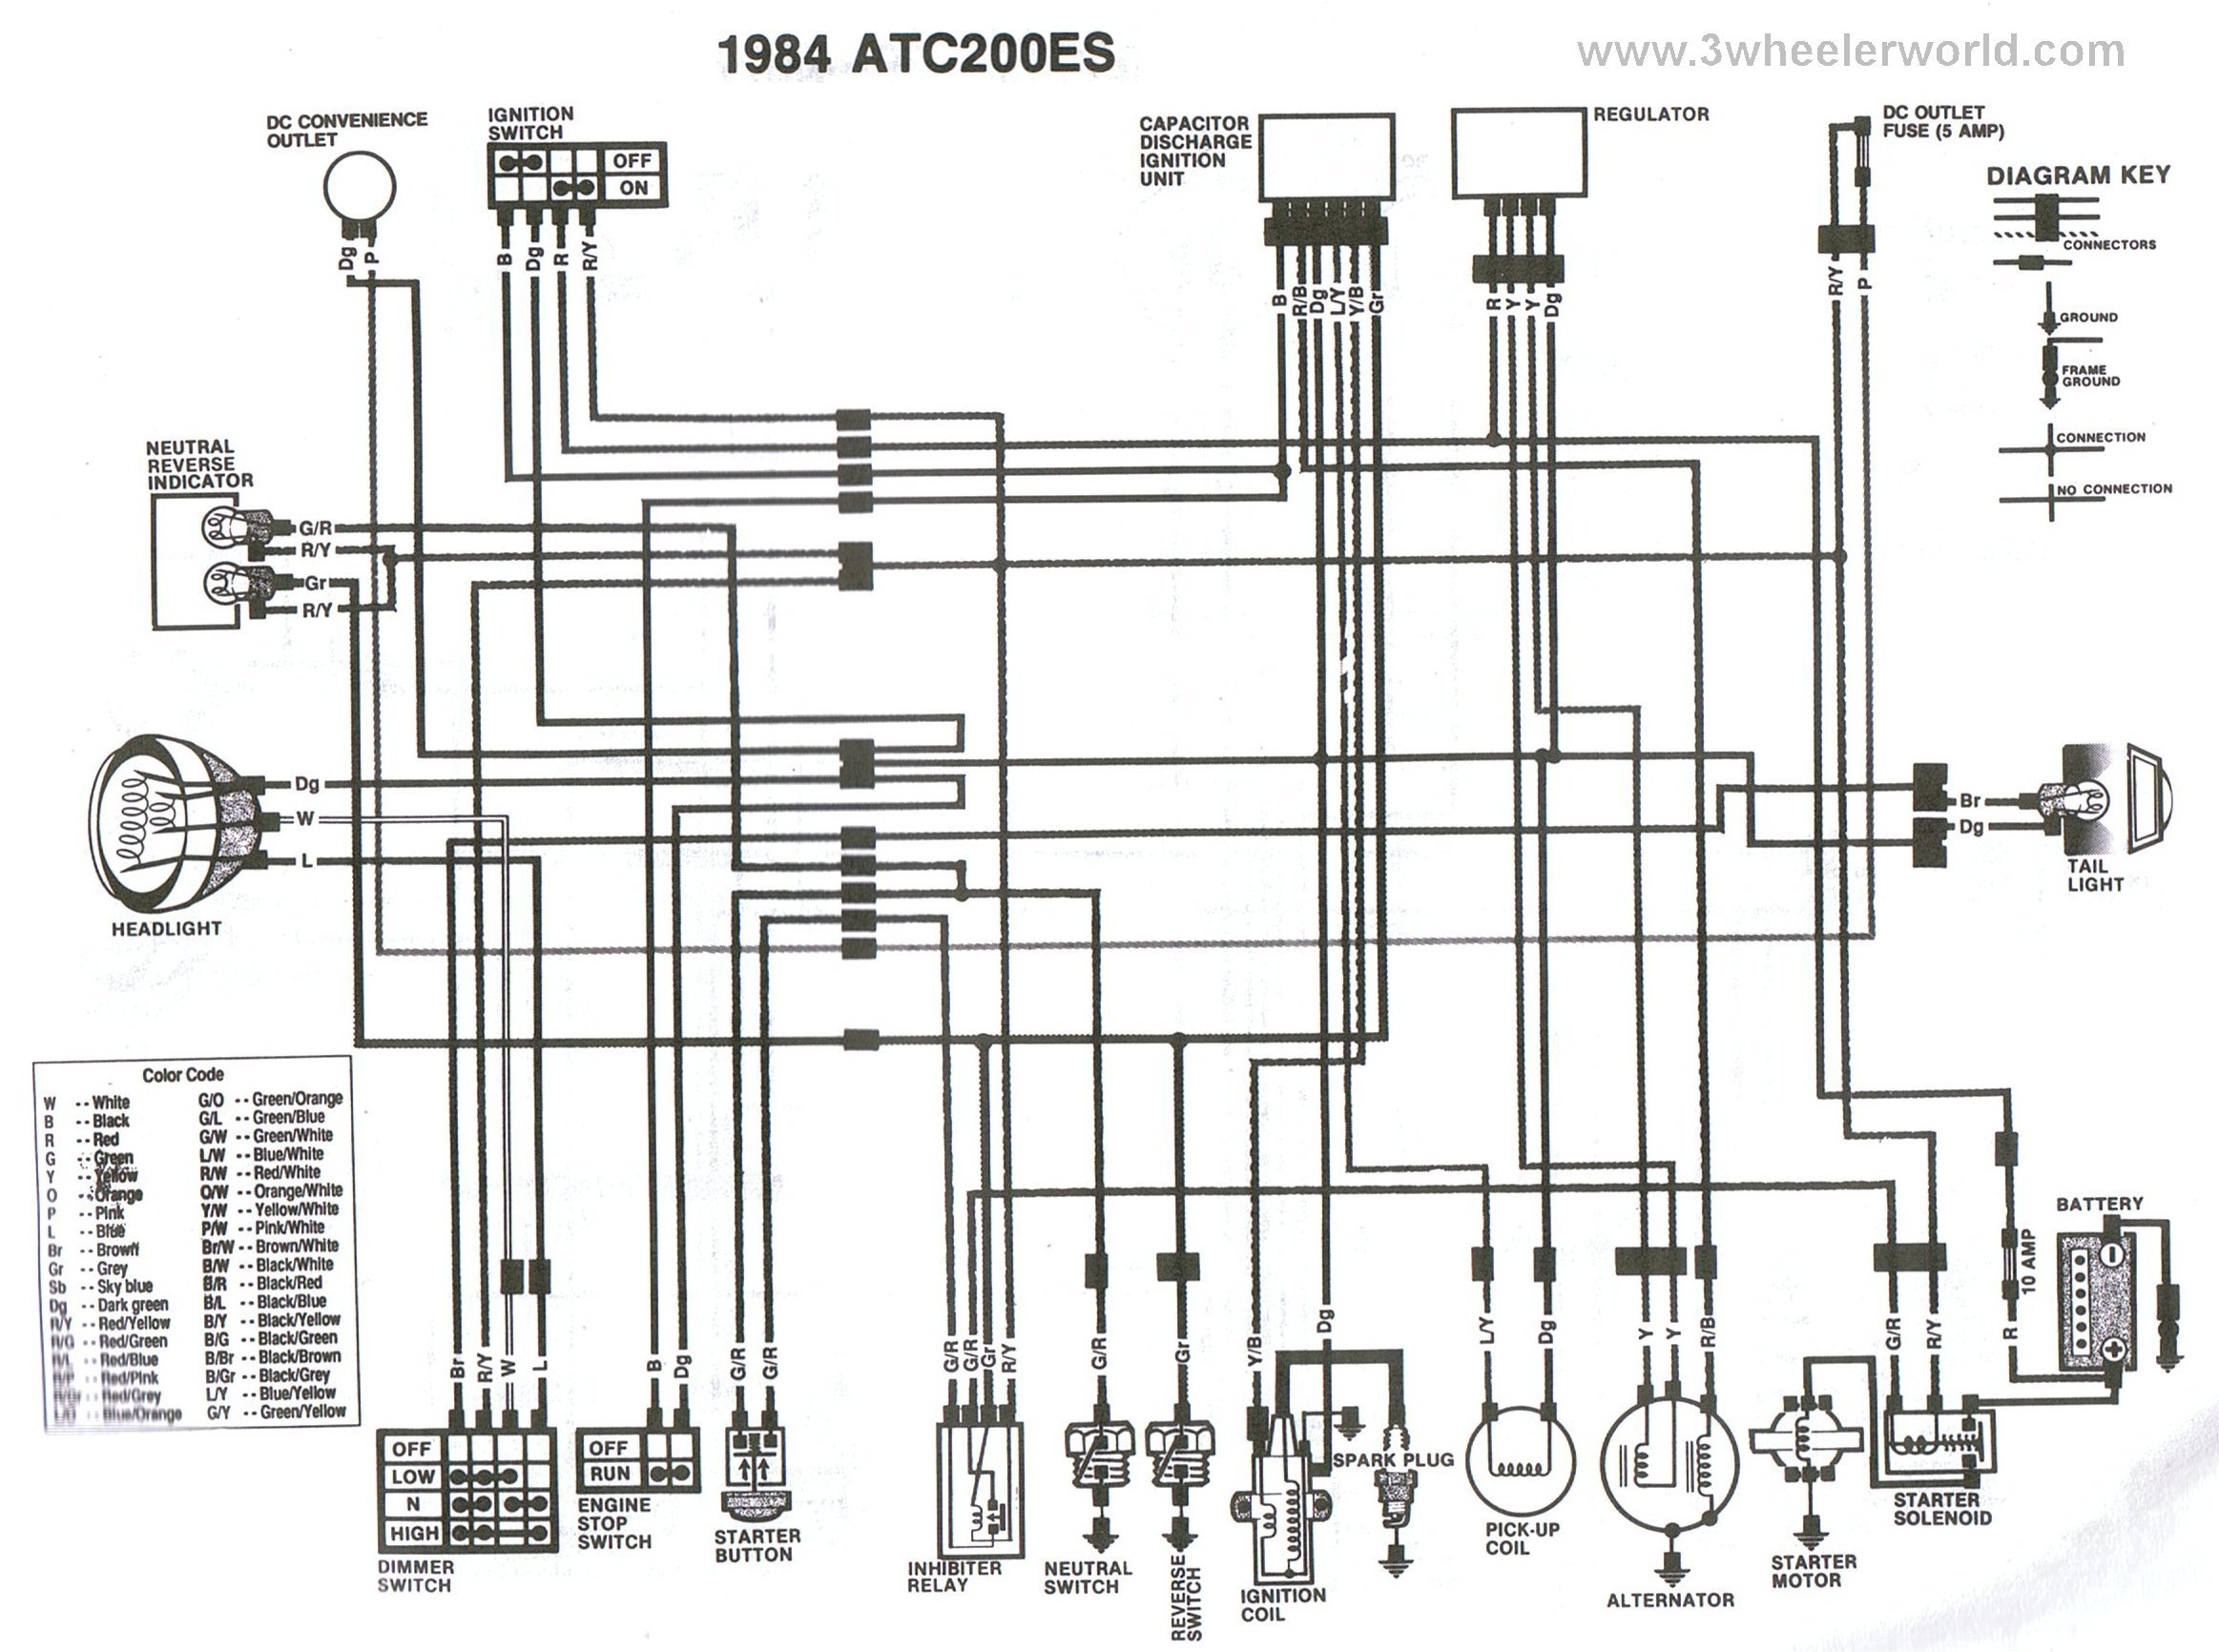 [DIAGRAM_5UK]  Honda Atc Wiring Diagram - Dodge Engine Diagram for Wiring Diagram  Schematics | Honda Atc 200 Wiring Diagram |  | Wiring Diagram Schematics